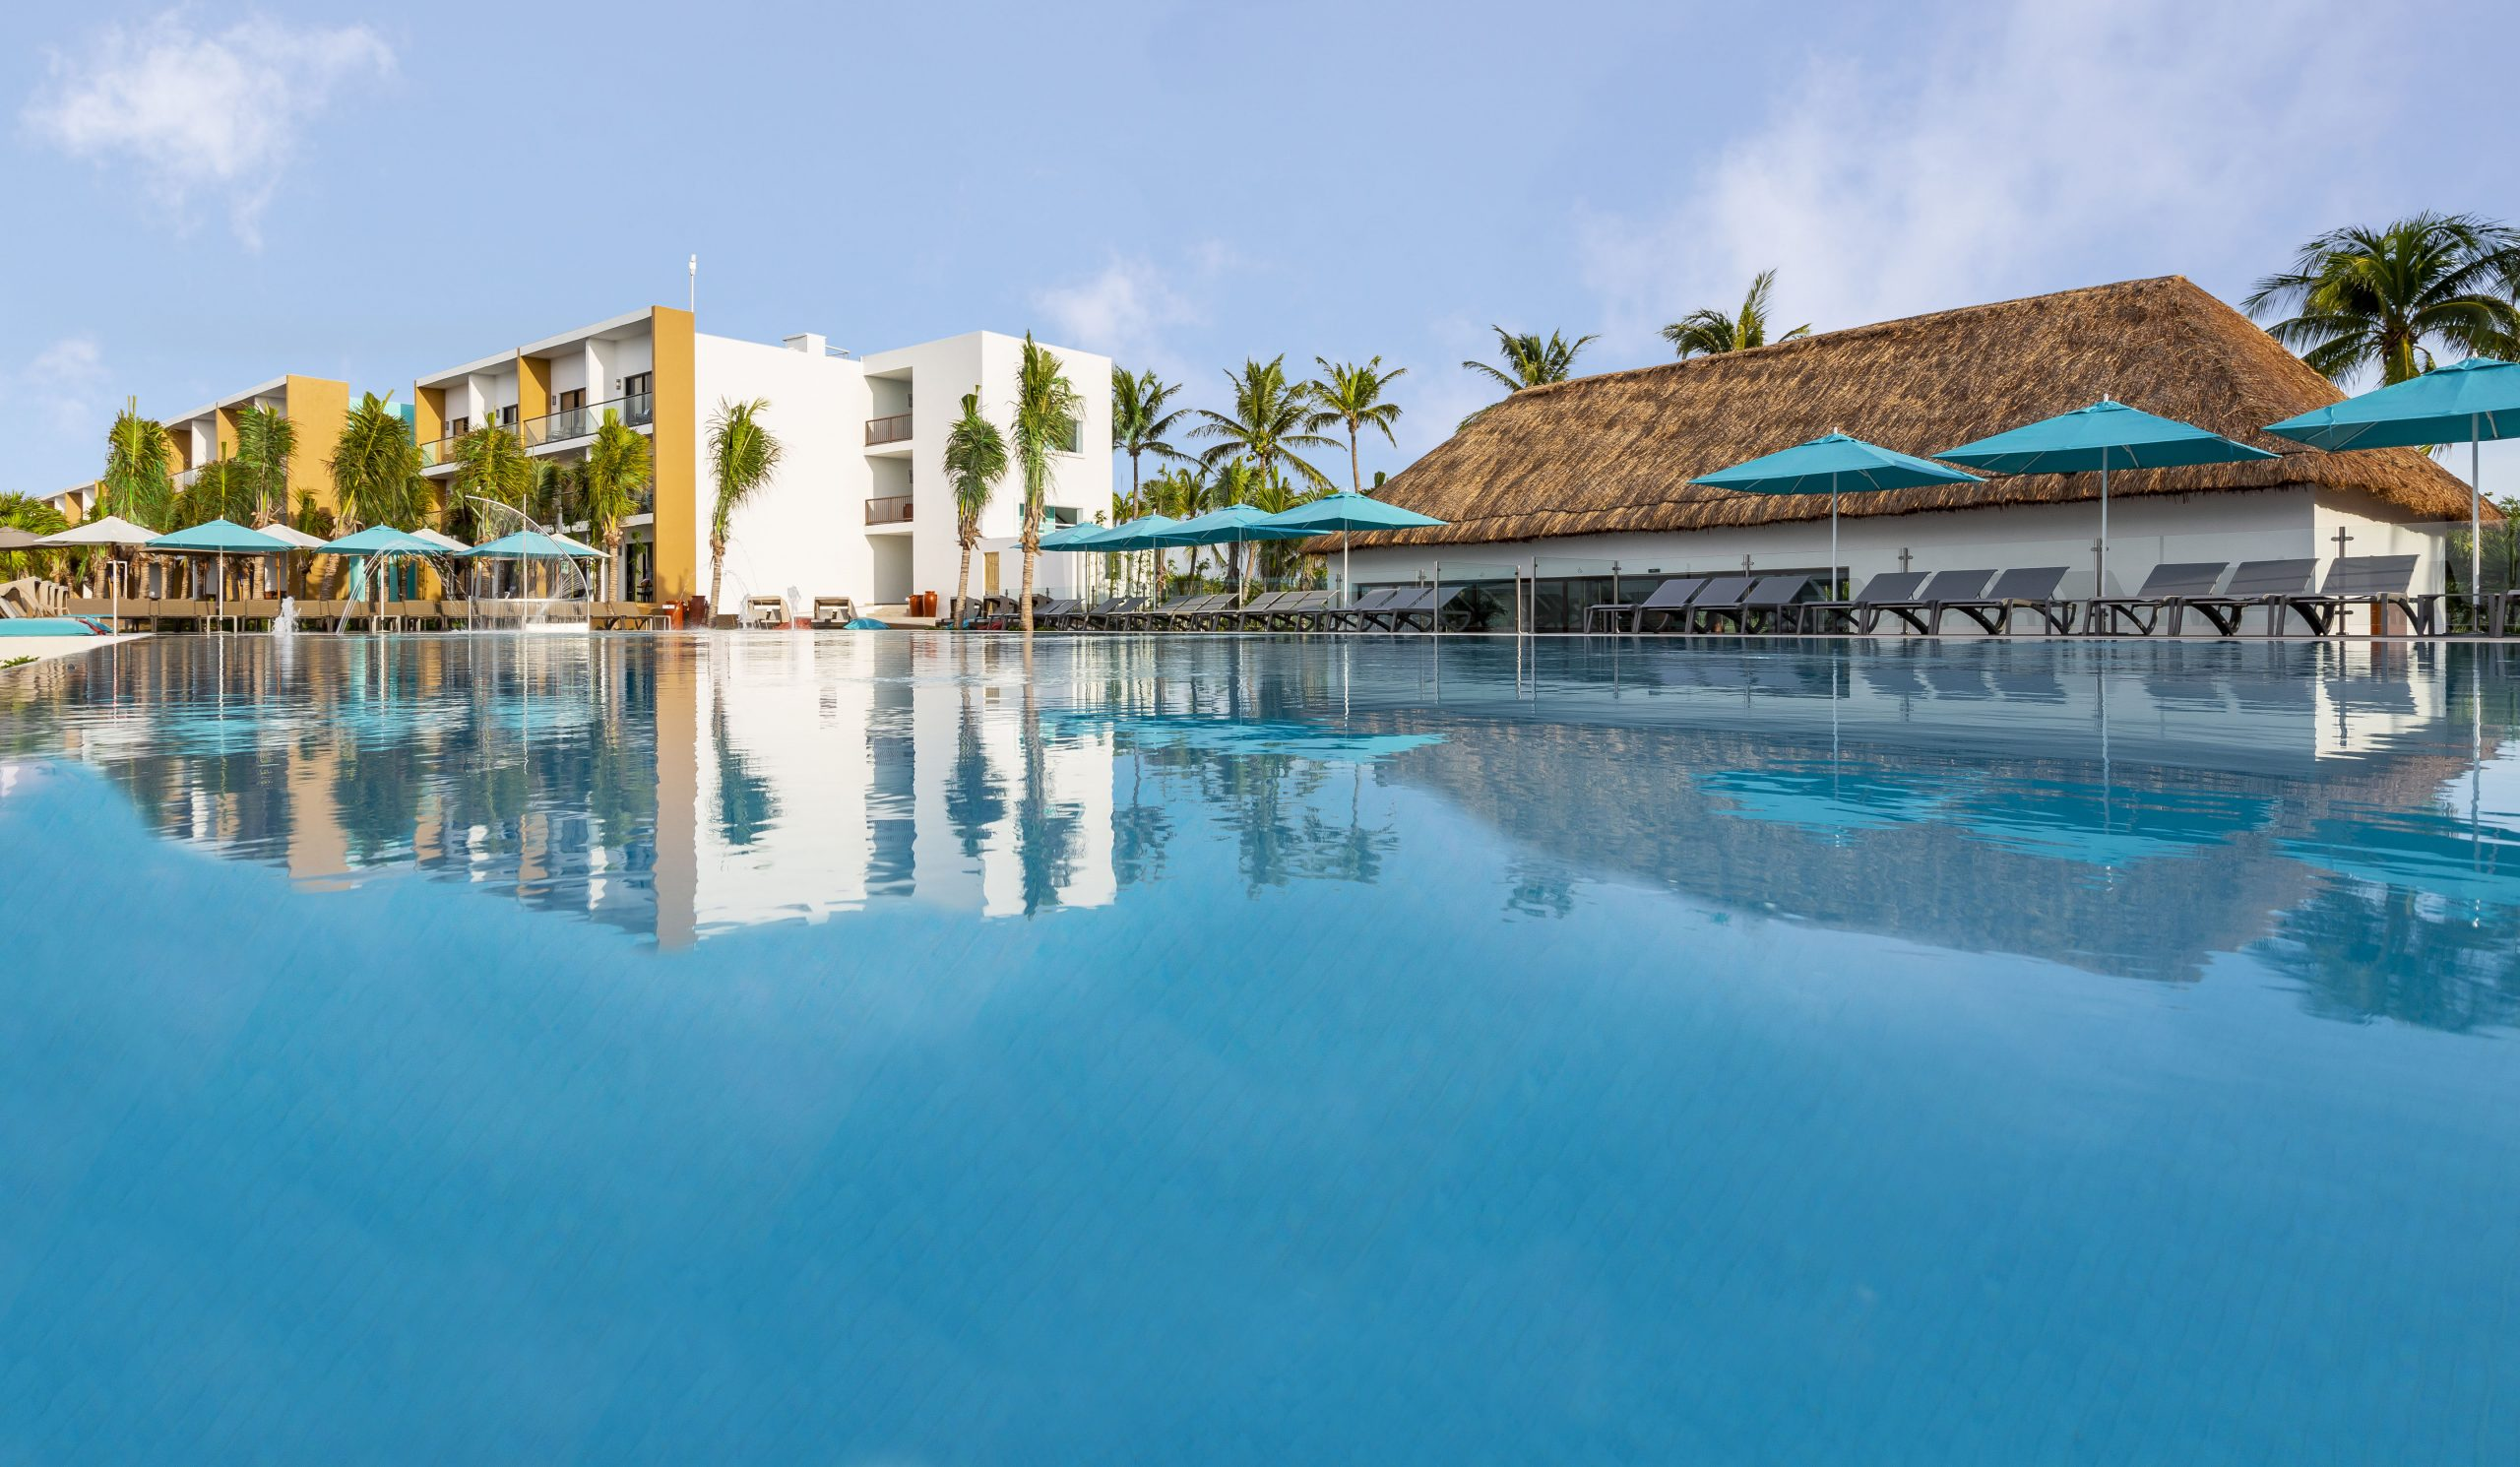 All Inclusive Resorts For Families | Club Med intérieur Piscine Eurocéane